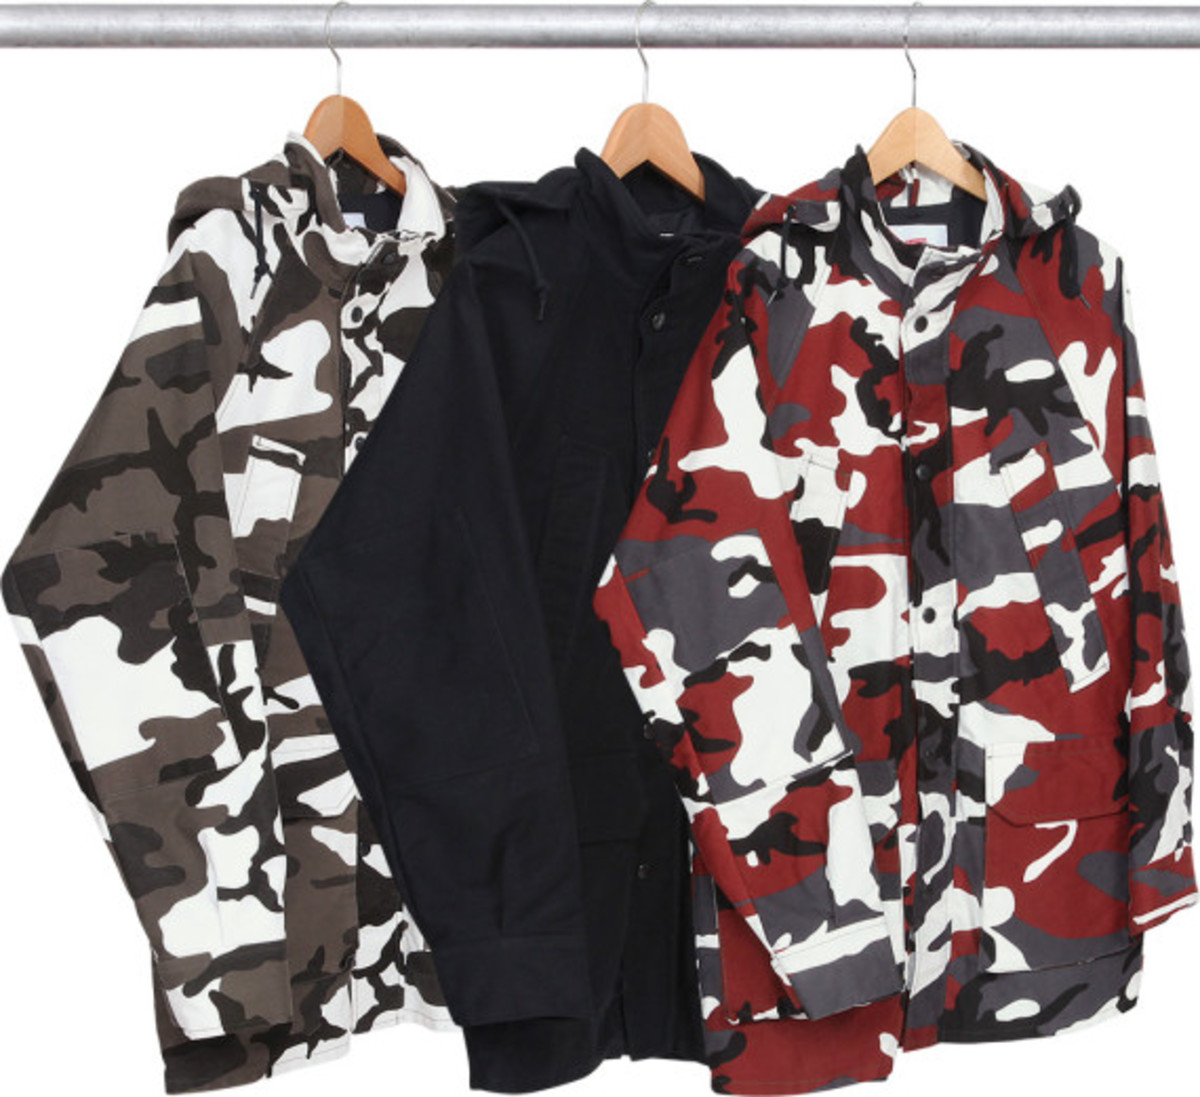 supreme-fall-winter-2013-outerwear-collection-63